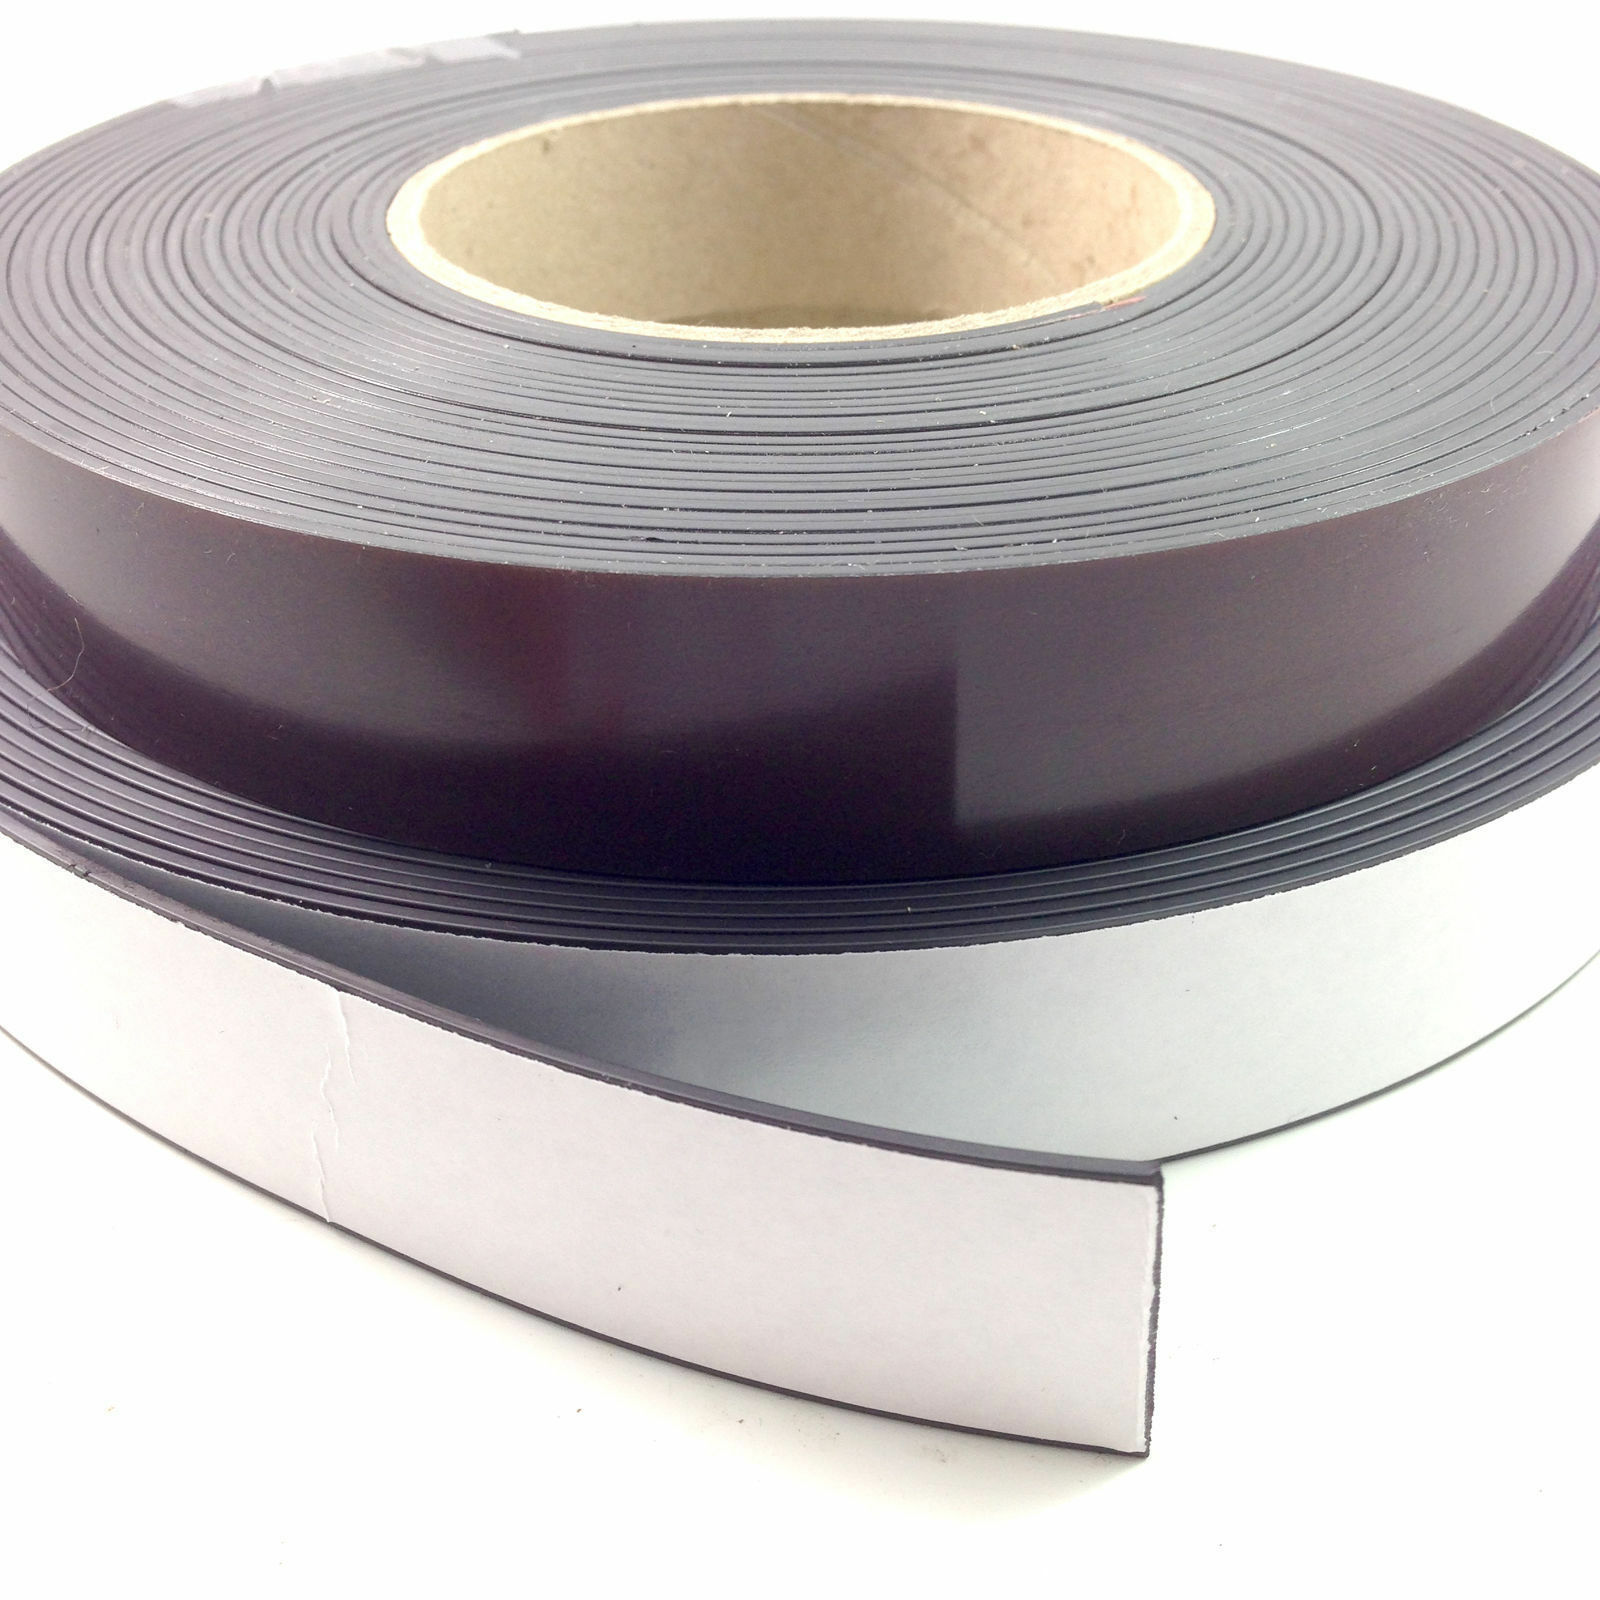 Details about SELF ADHESIVE MAGNETIC CRAFT TAPE - STRIP A, B & MULTI  POLARITY FRIDGE PICTURE